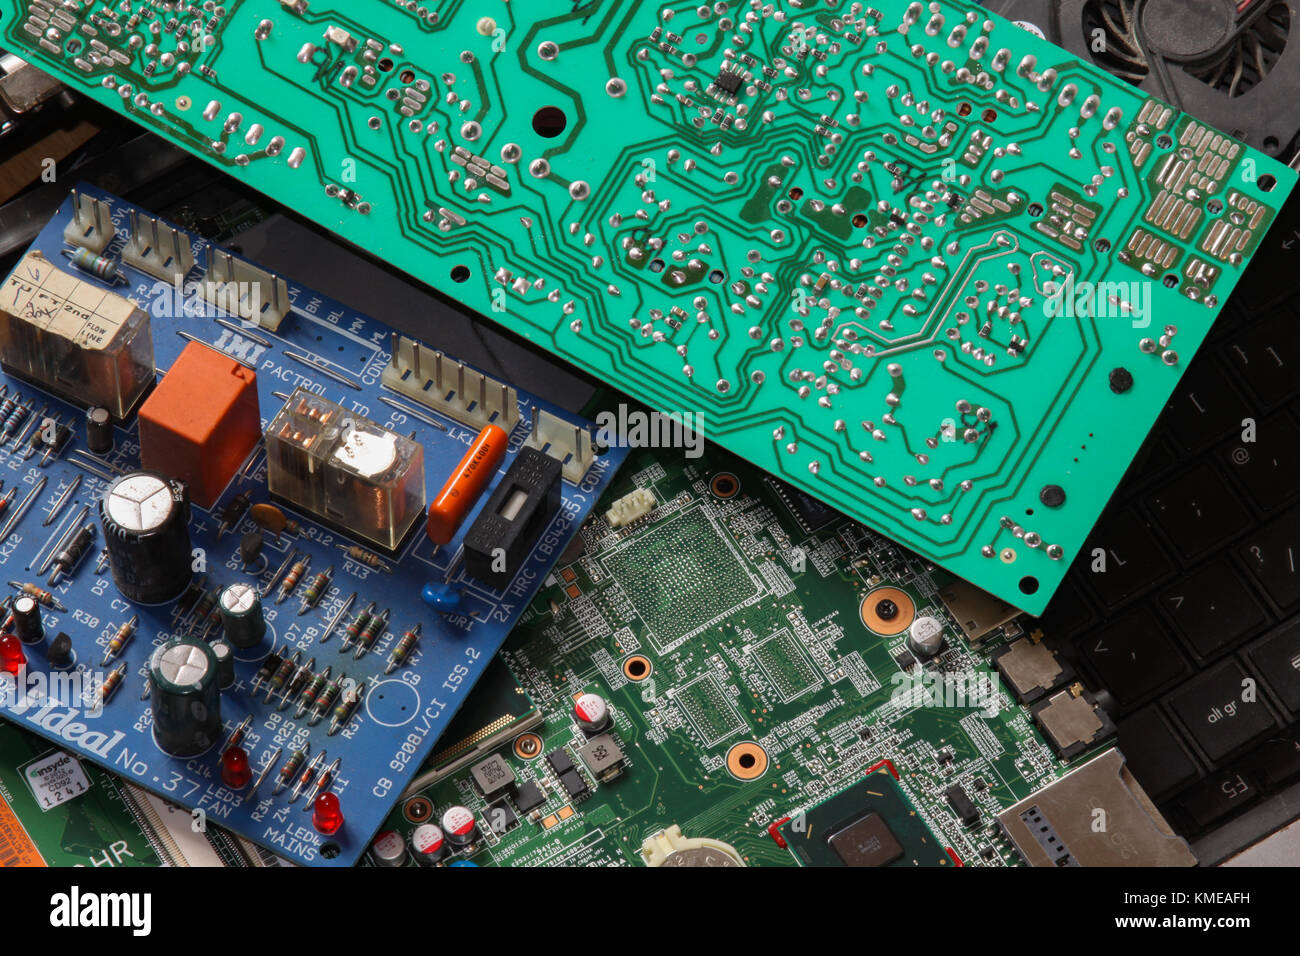 Waste circuit boards and computers. UK - Stock Image